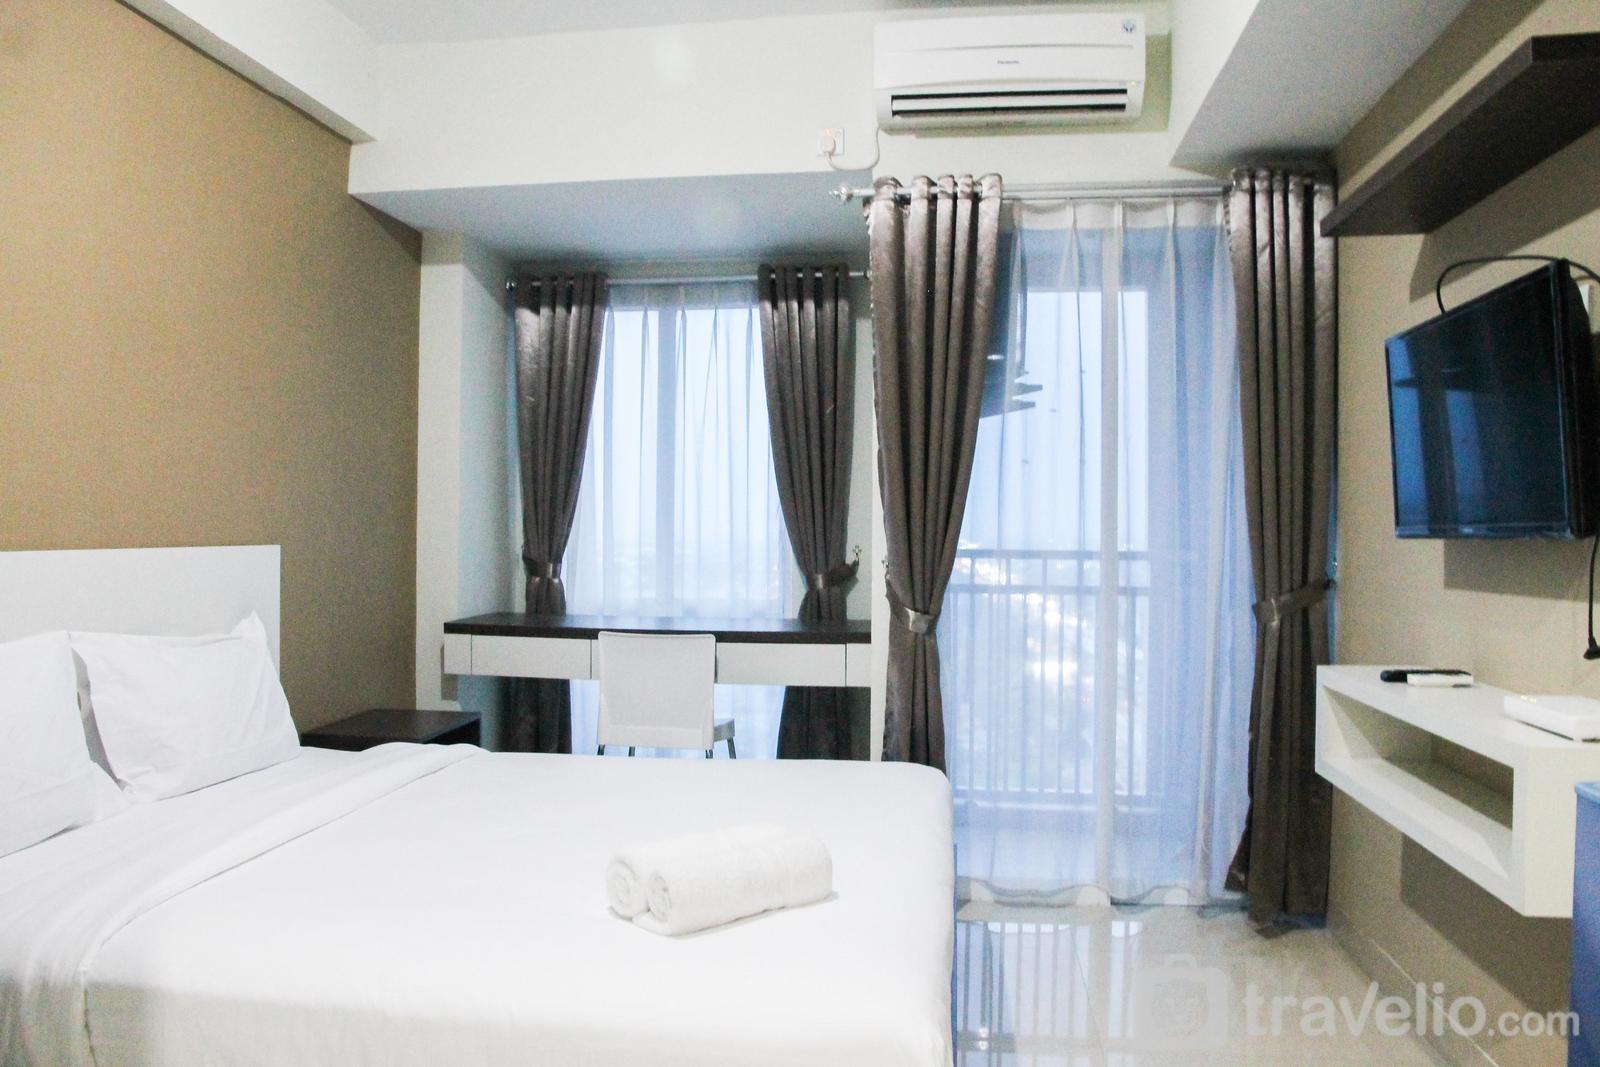 Grand Dhika City Apartment - Nice Furnished Studio Apartment @ Grand Dhika City By Travelio